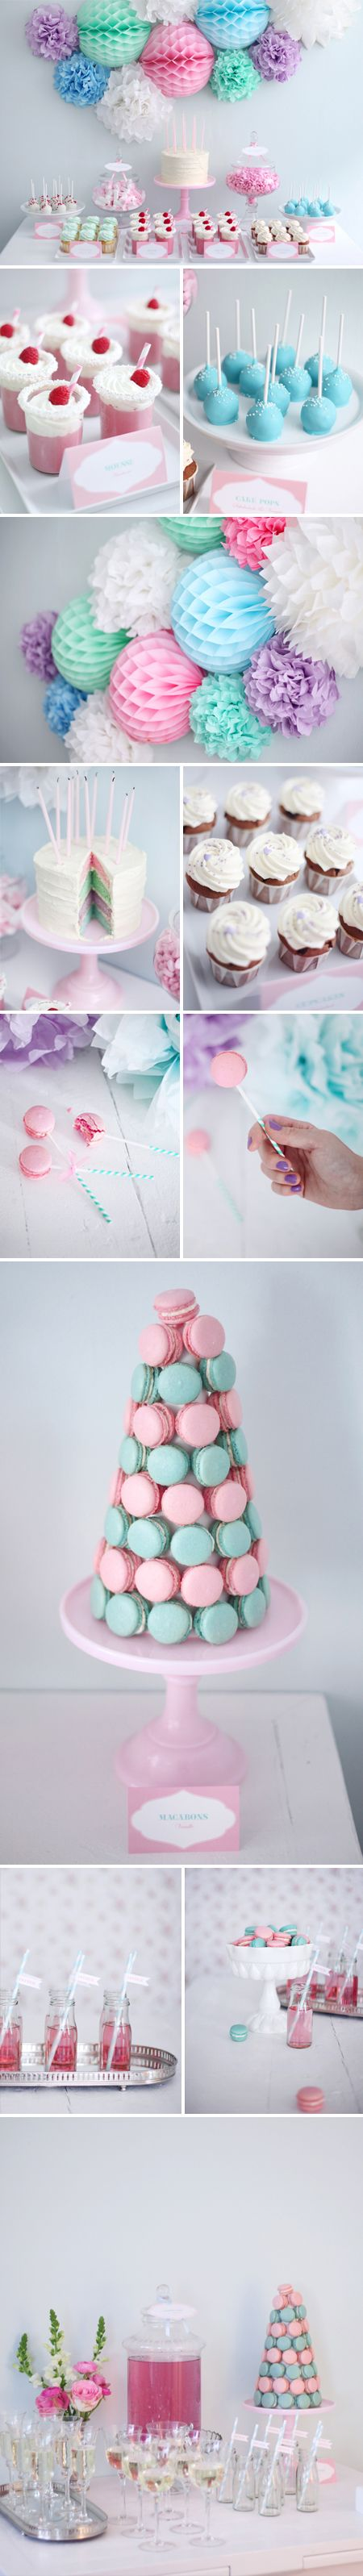 LOVE this even more - like all the diff colors w/ white anchoring everything. The cake pops are also shown there along w/ a bar.